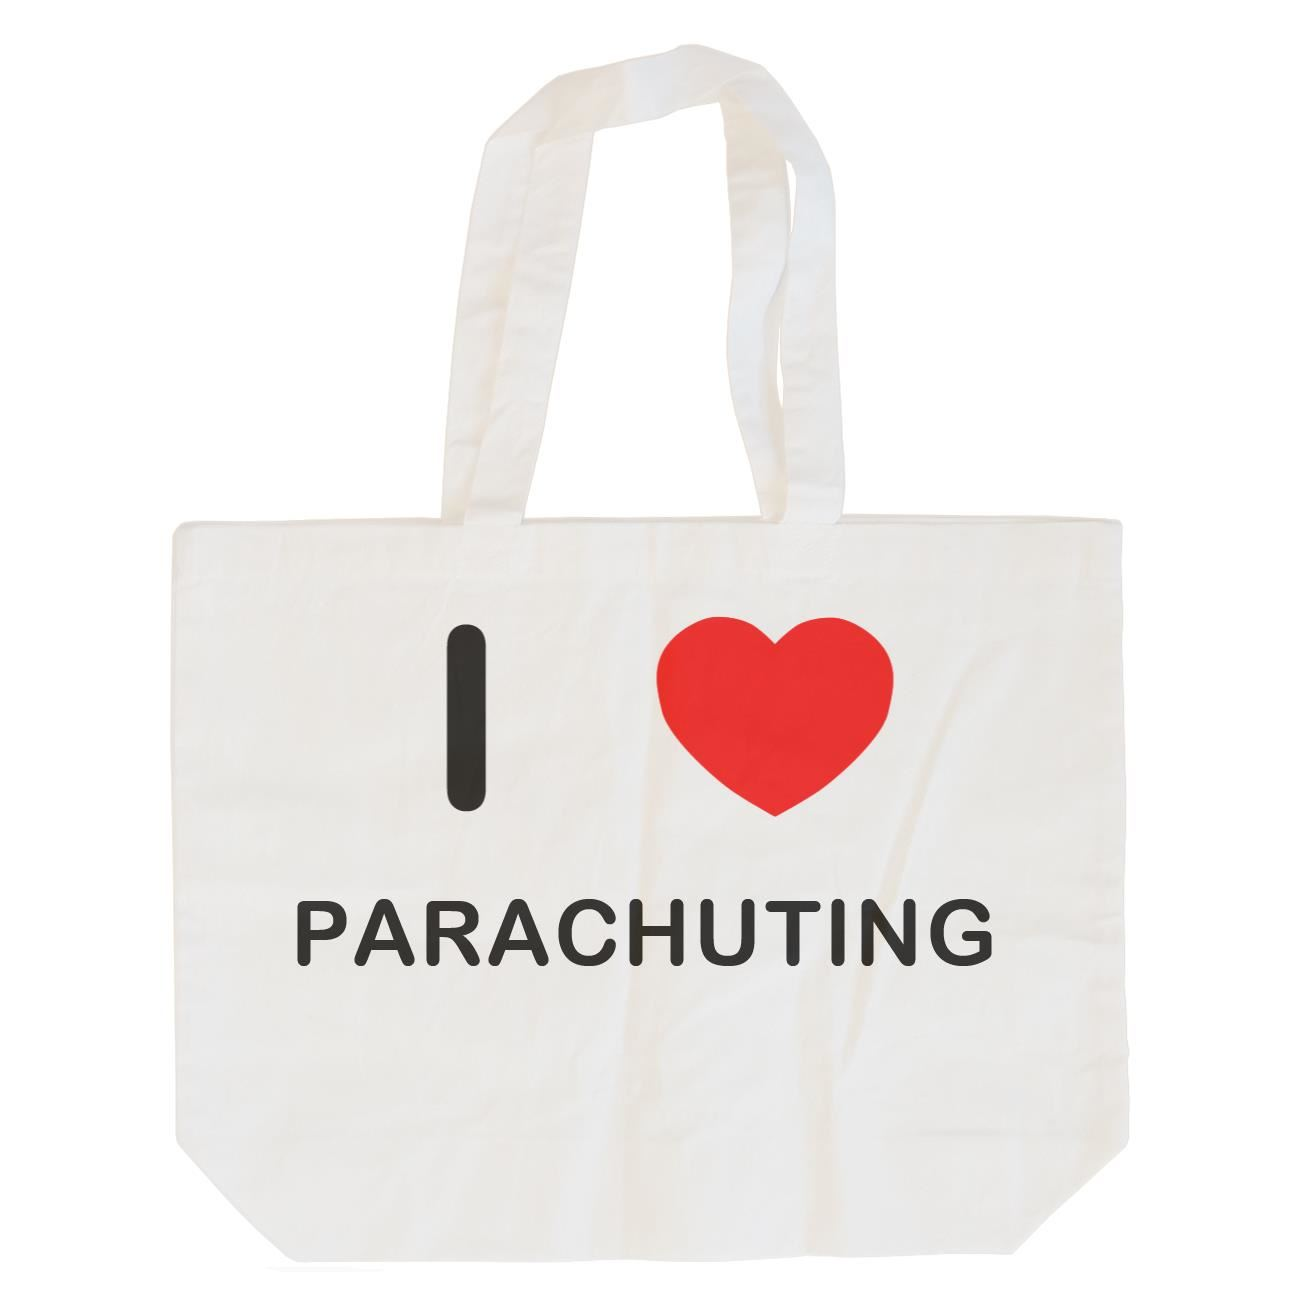 I Love Parachuting - Cotton Bag | Size choice Tote, Shopper or Sling